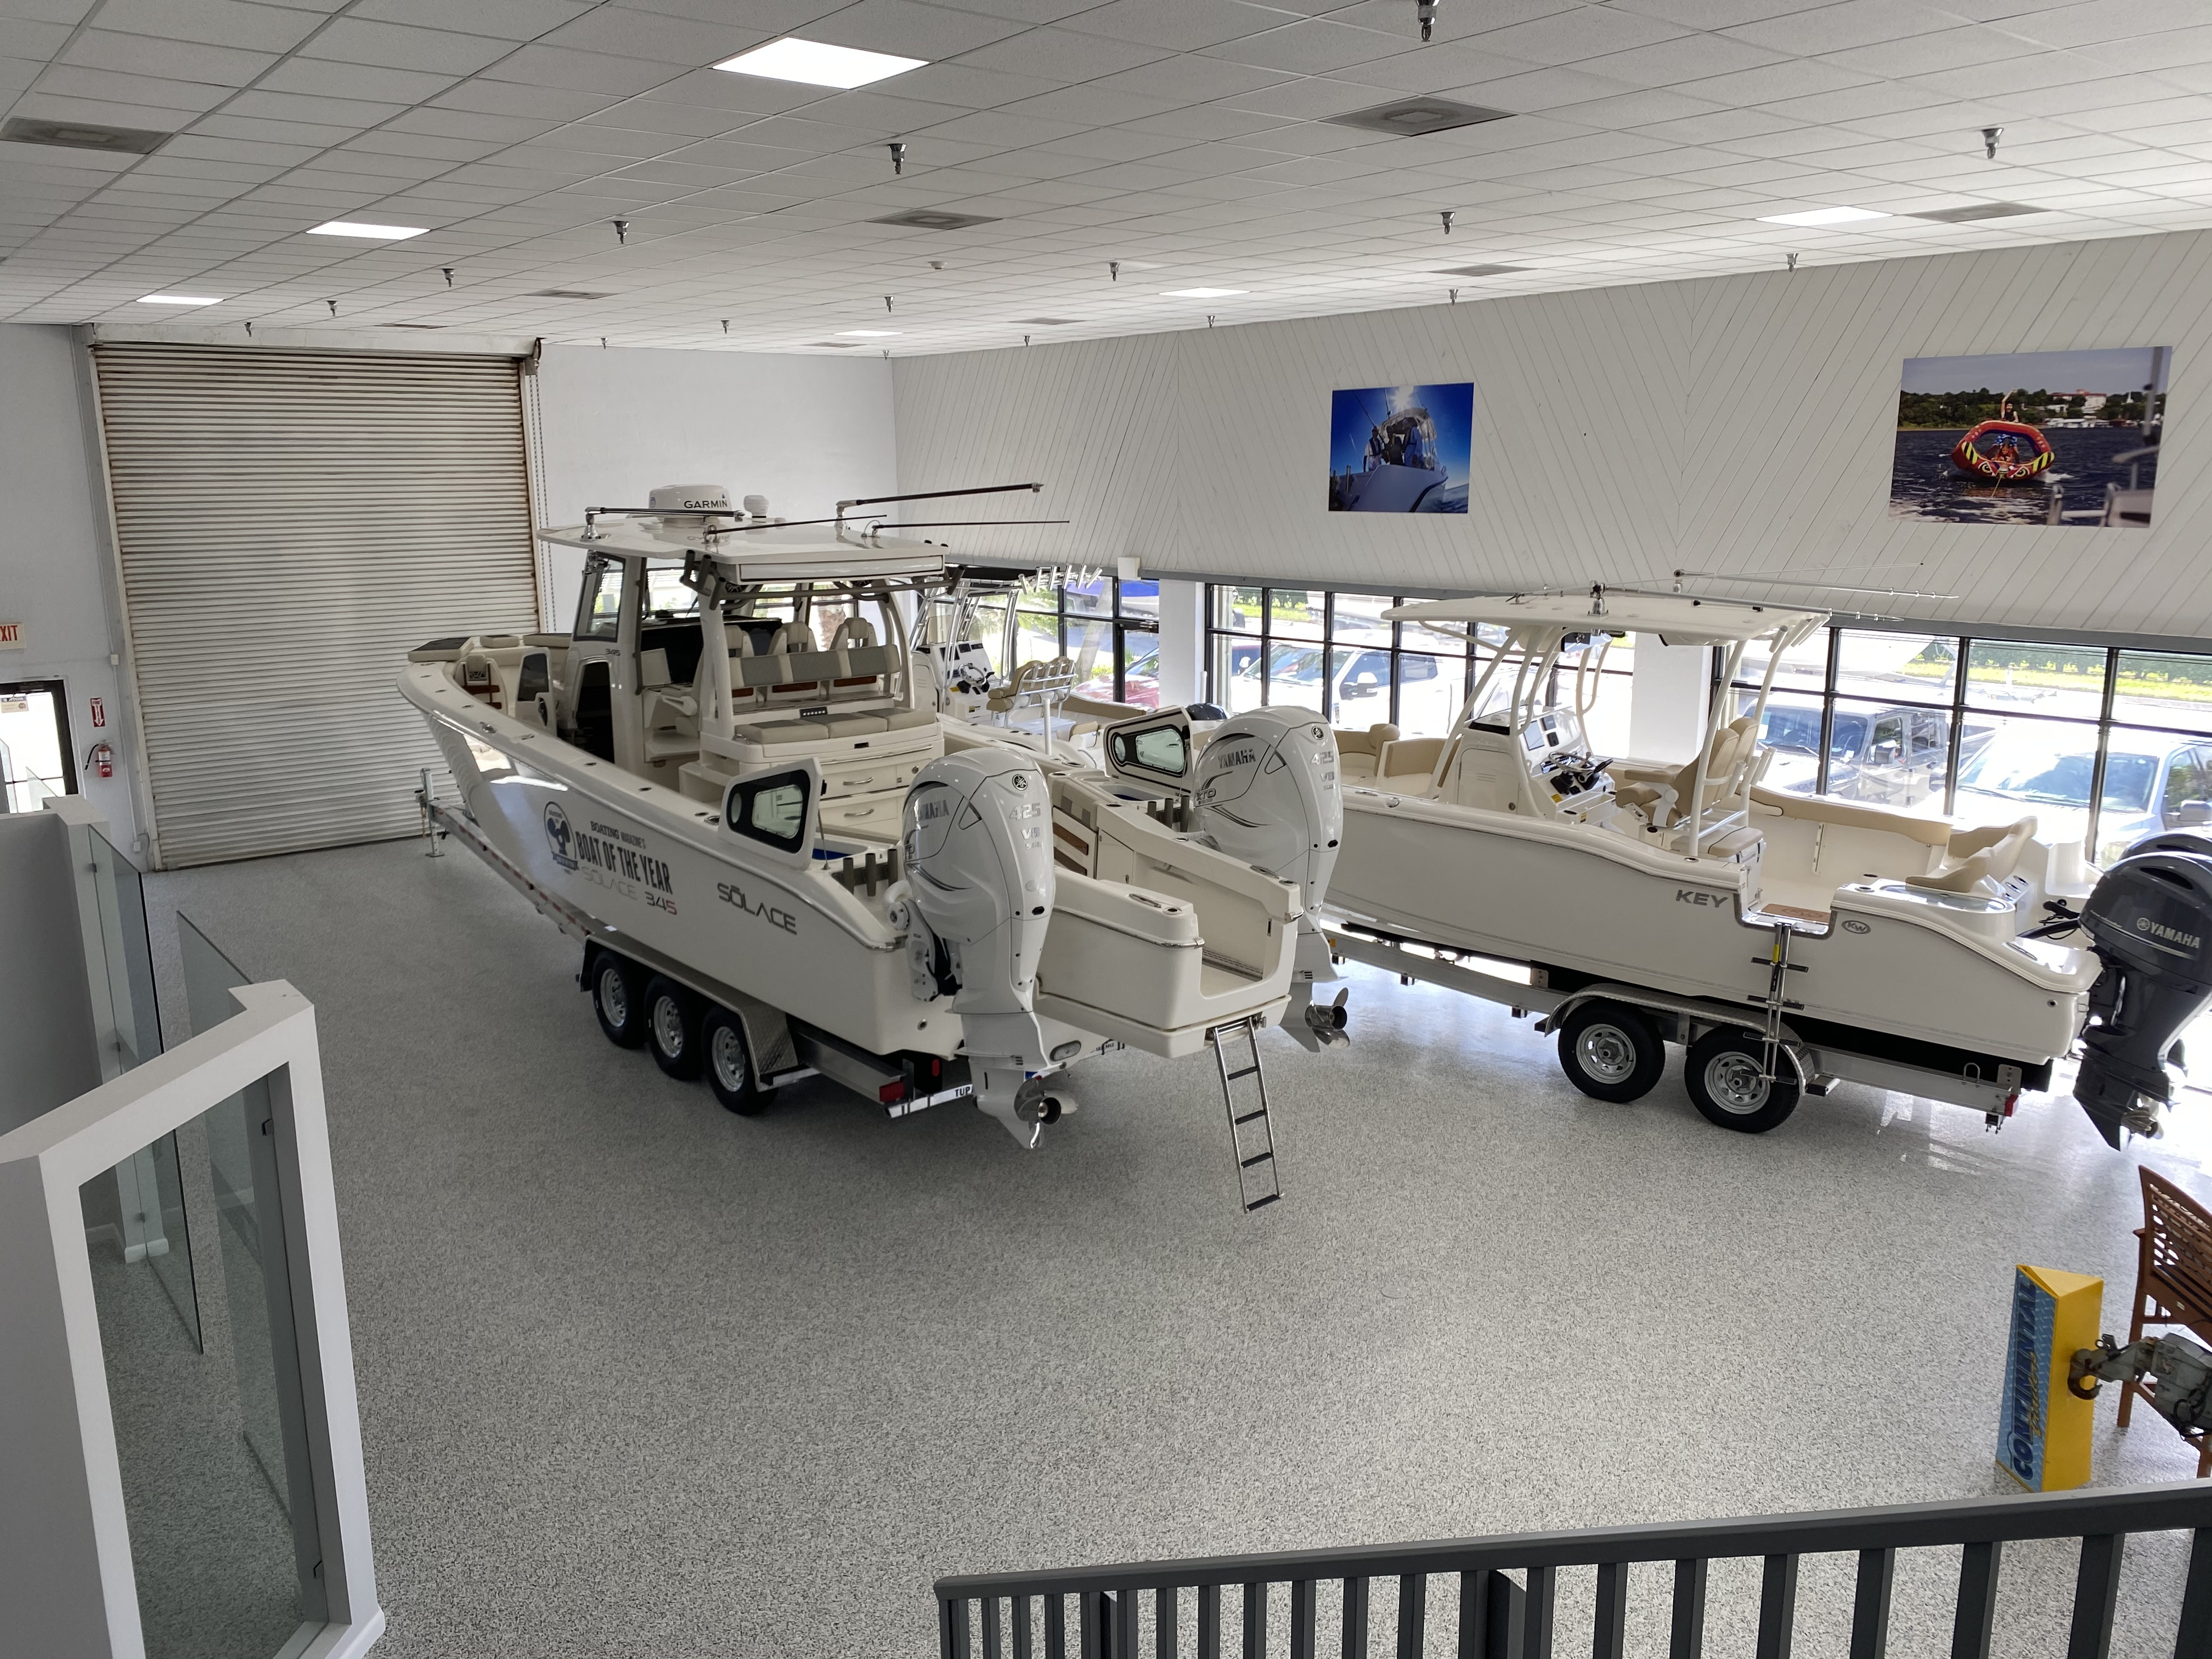 showroom with white boats